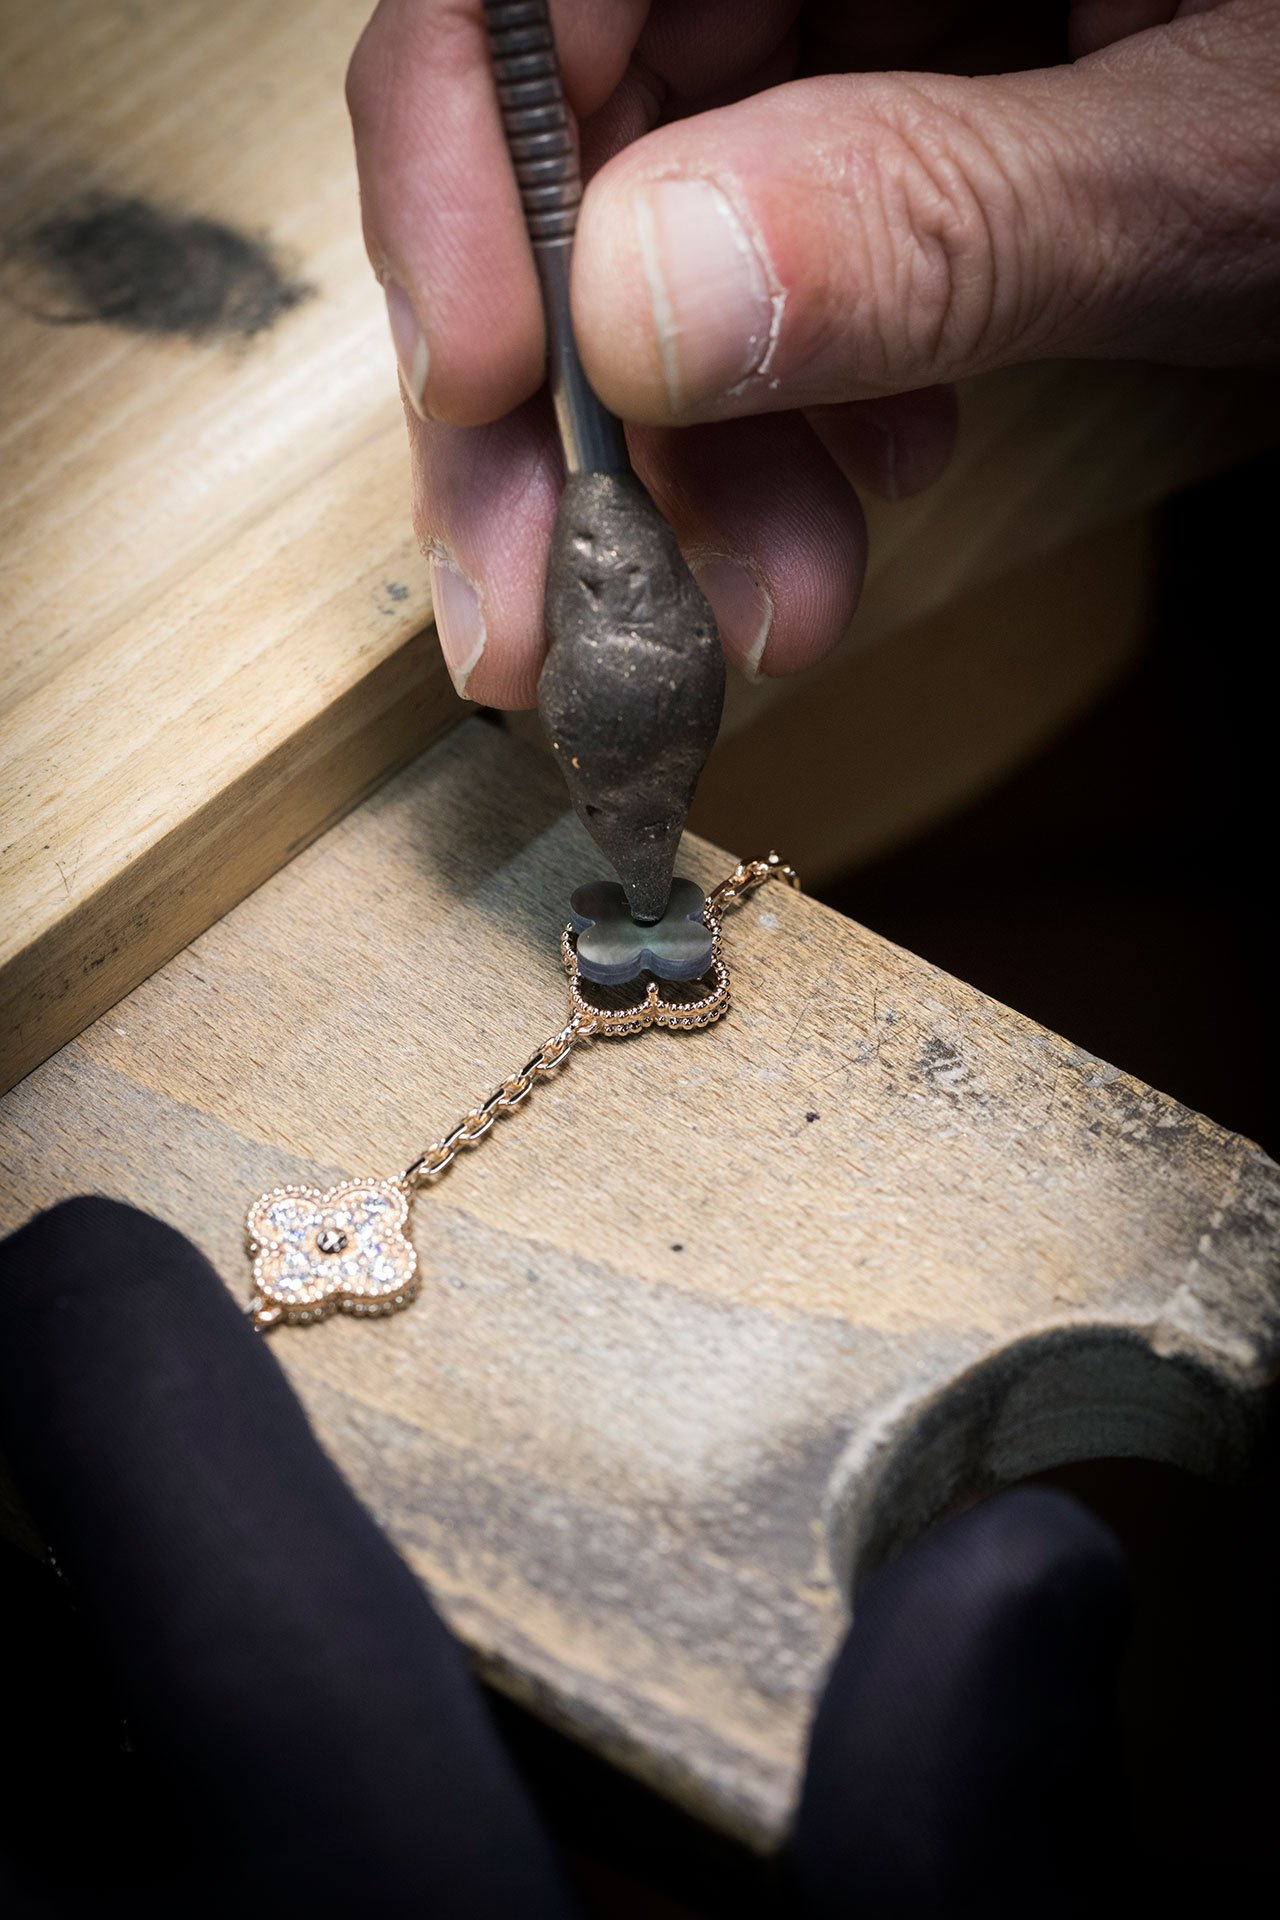 Van Cleef & Arpels' making of Alhambra long necklace. Photo © Van Cleef & Arpels.